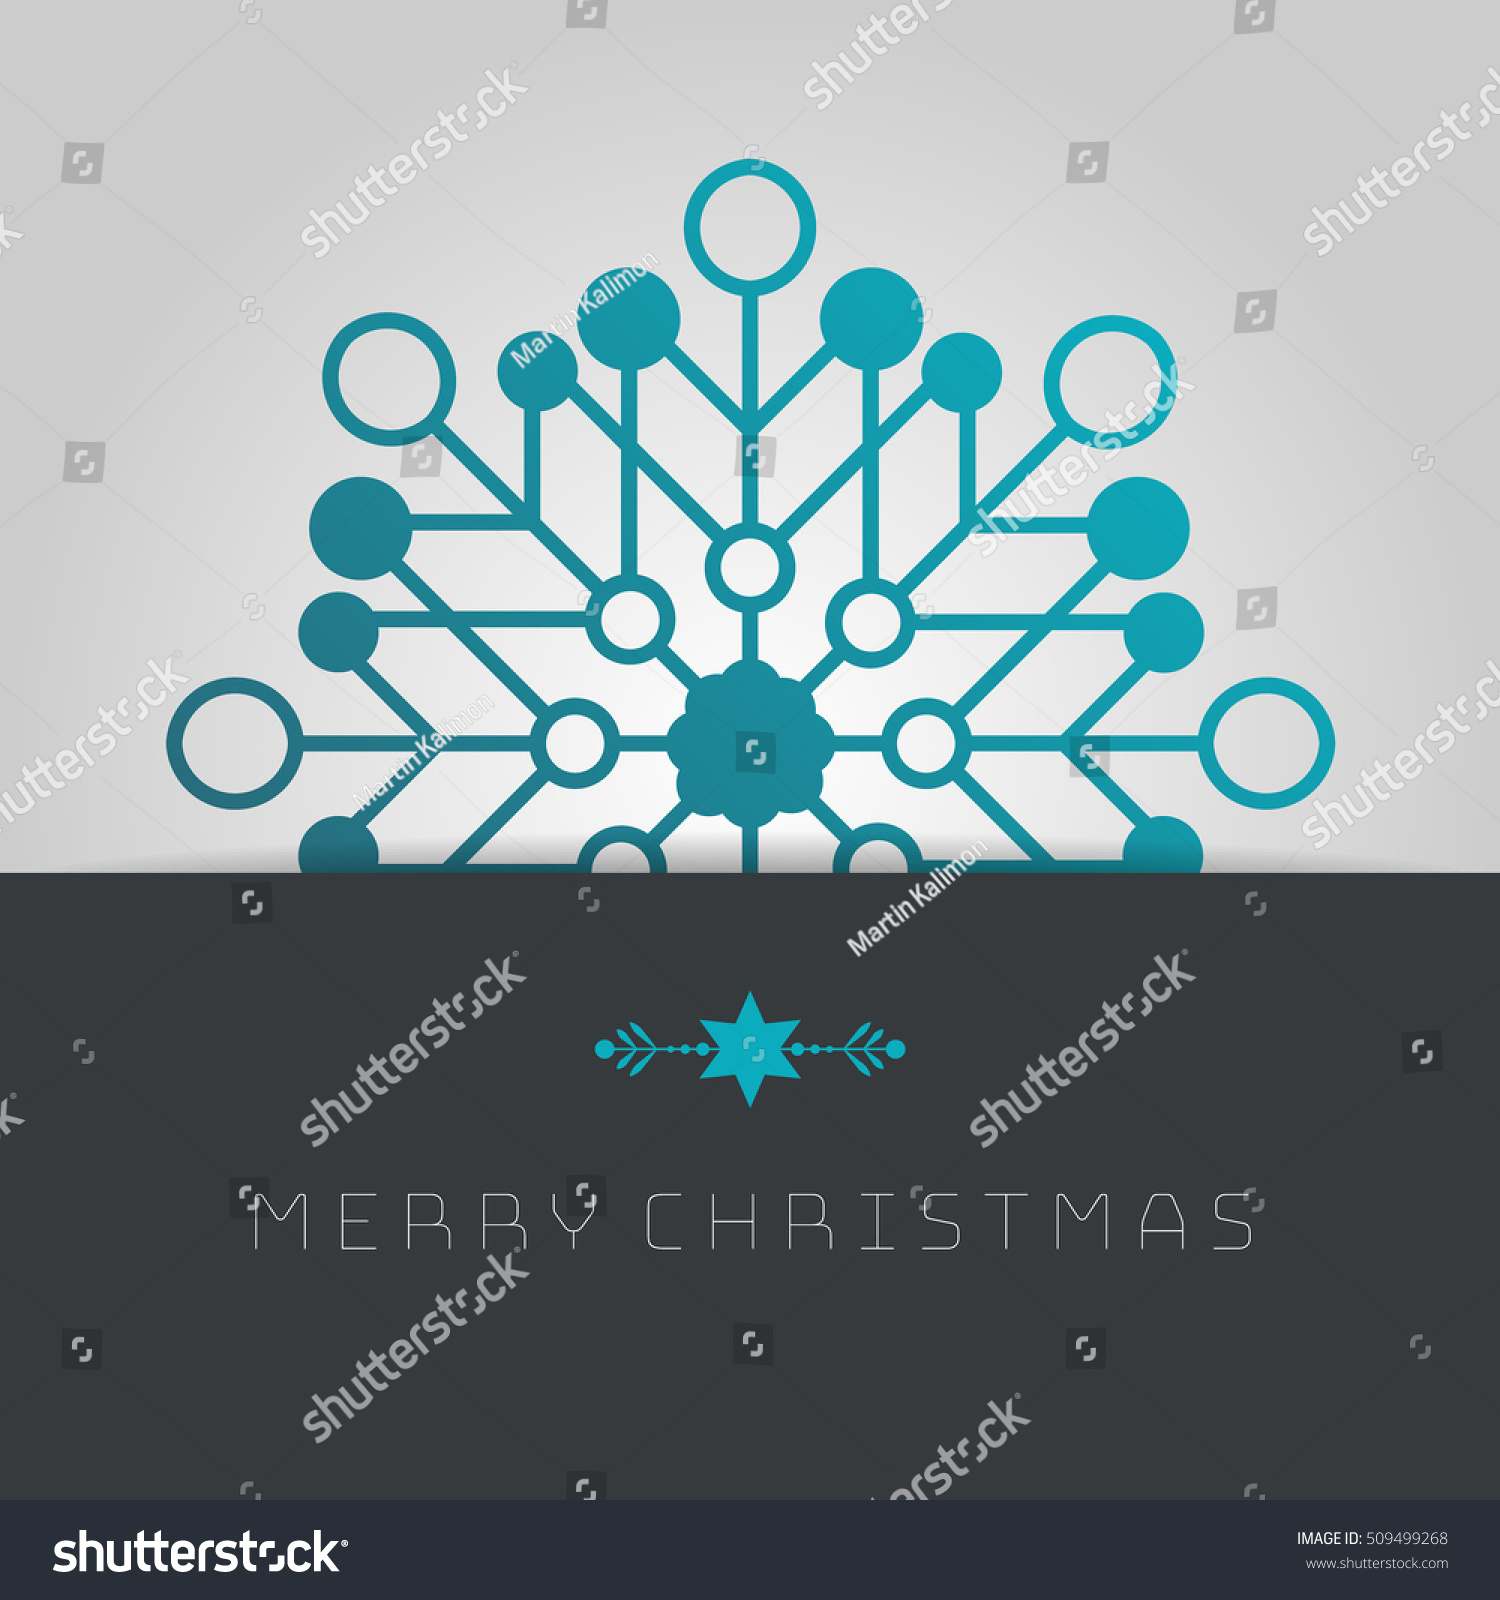 Business Greeting Christmas Card Template Snowflakes Stock Vector ...